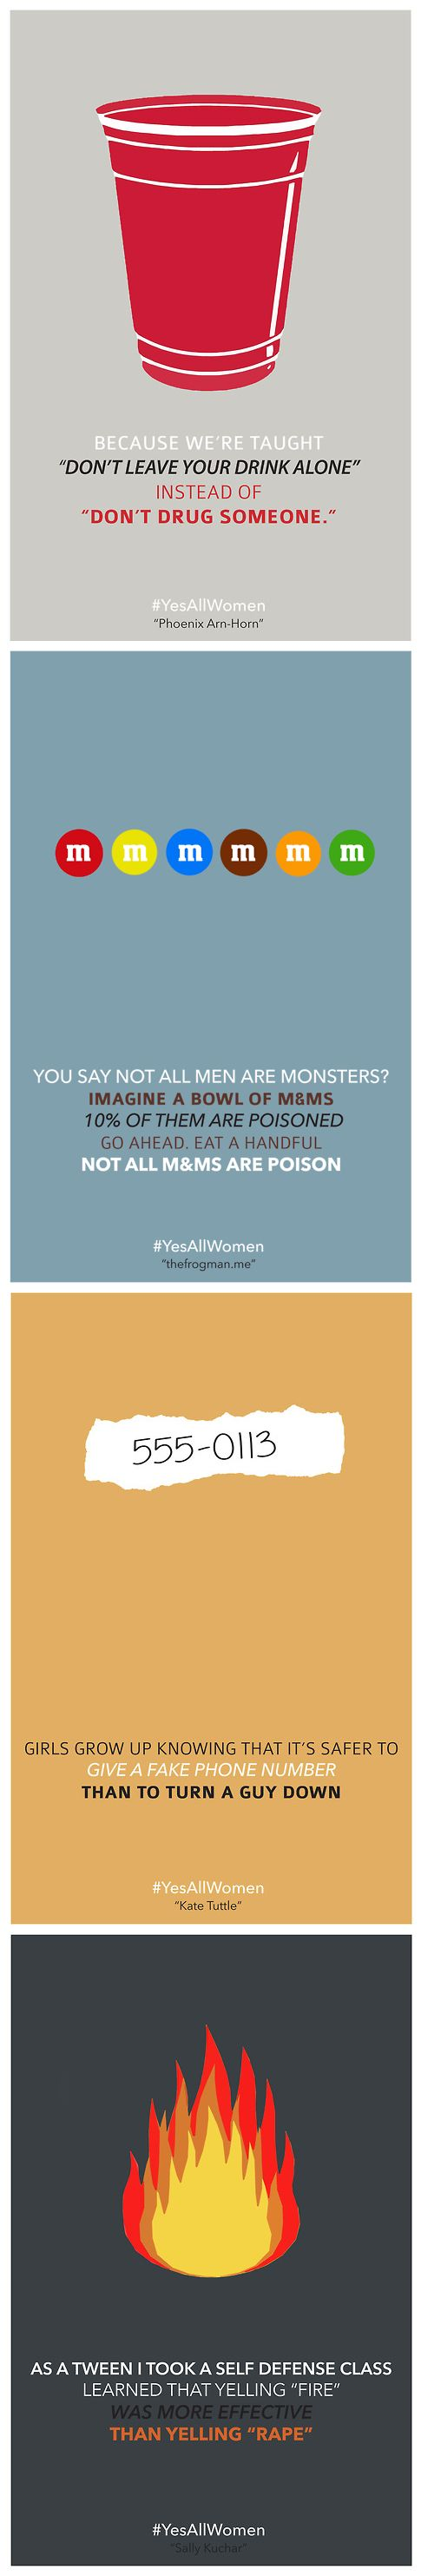 All women can relate, and even one is far too many. #Yesallwomen